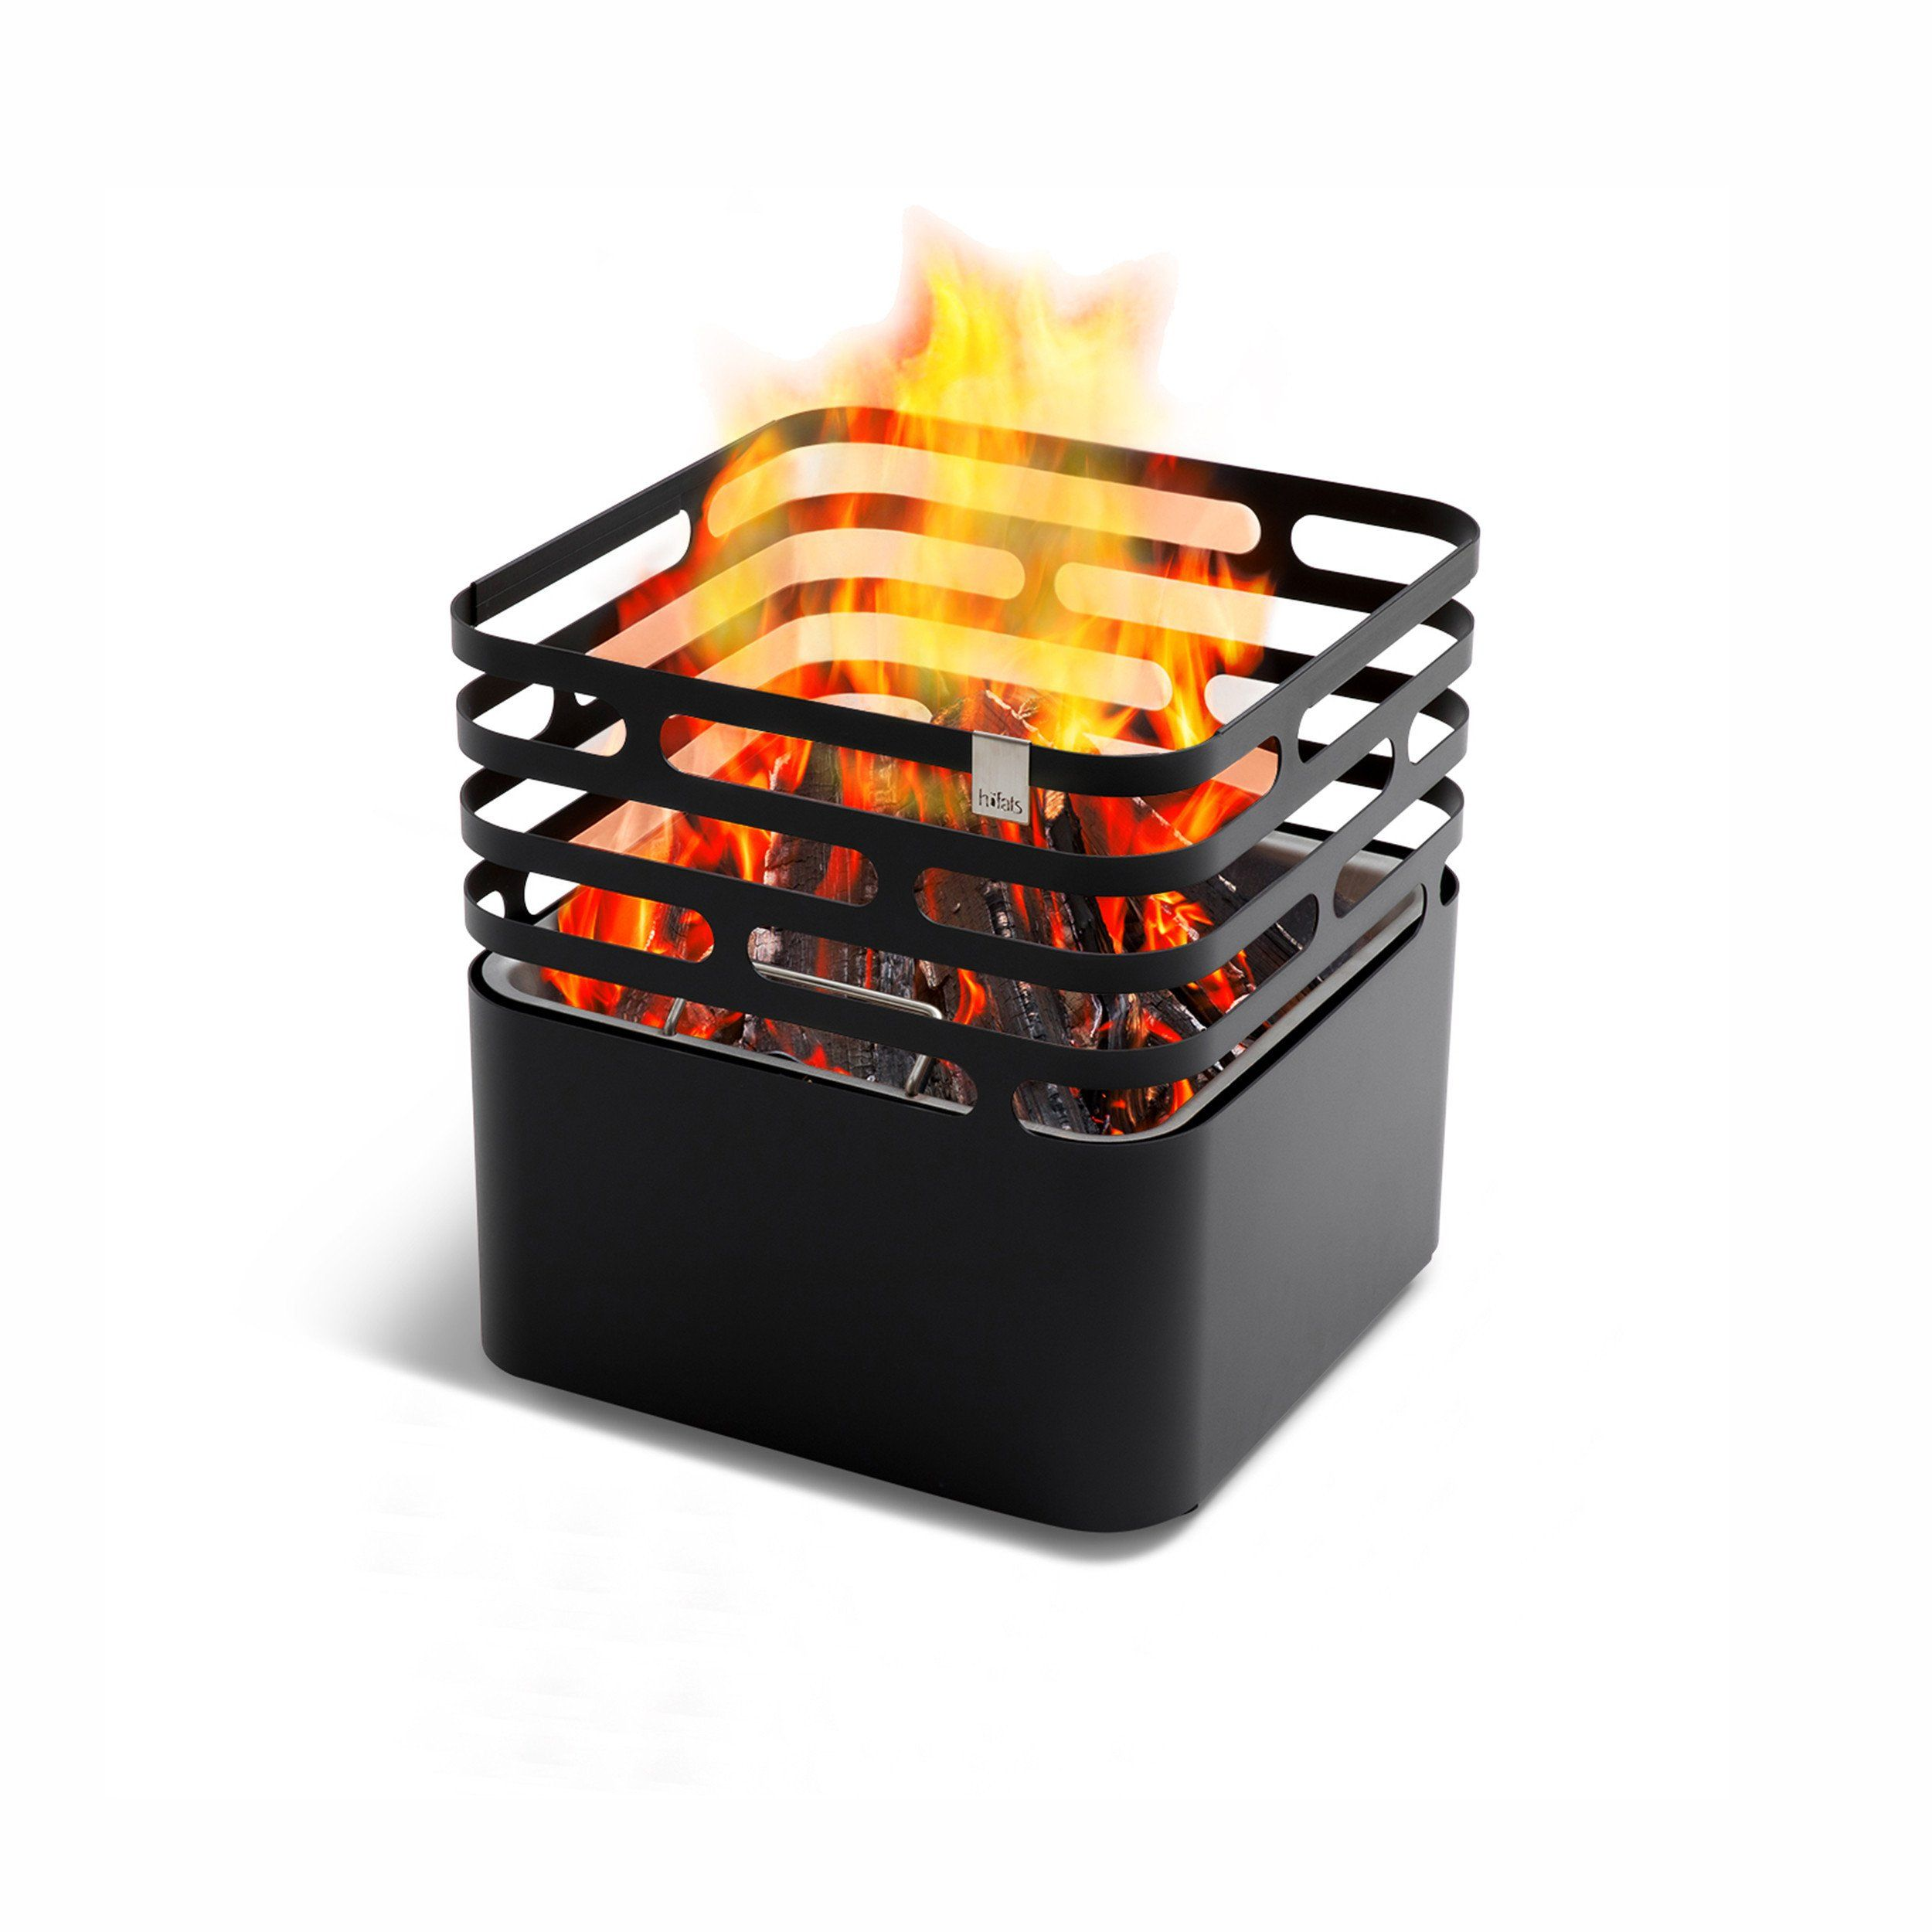 Feuerkorb Mit Grill Cube Fire Basket Table Pinterest Fire Basket Fire And